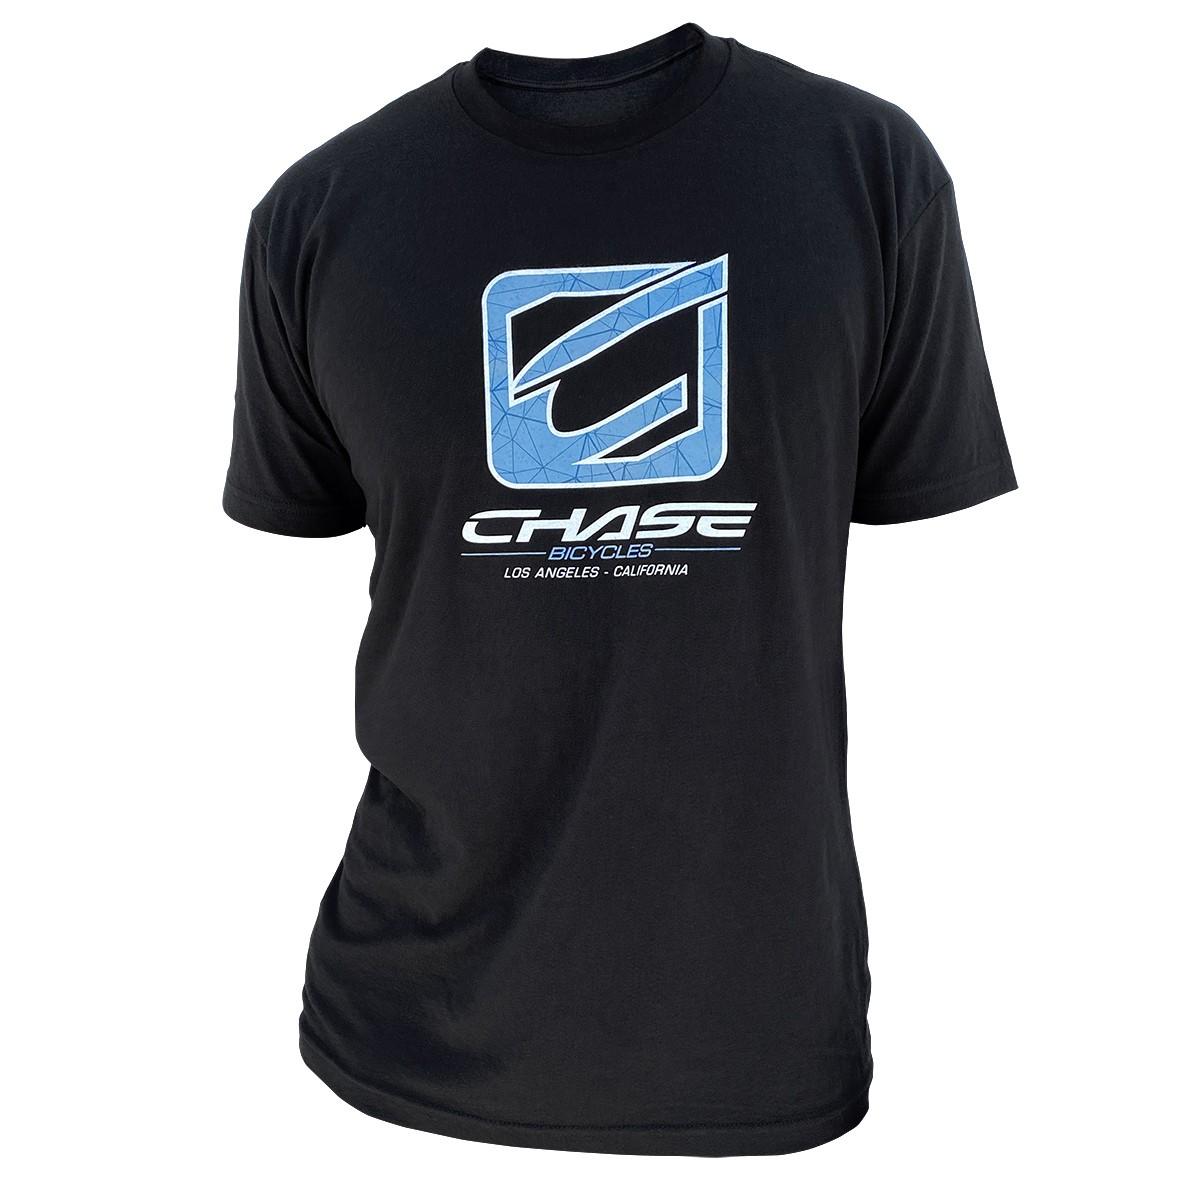 CHASE BICYCLES TEAM T-SHIRT